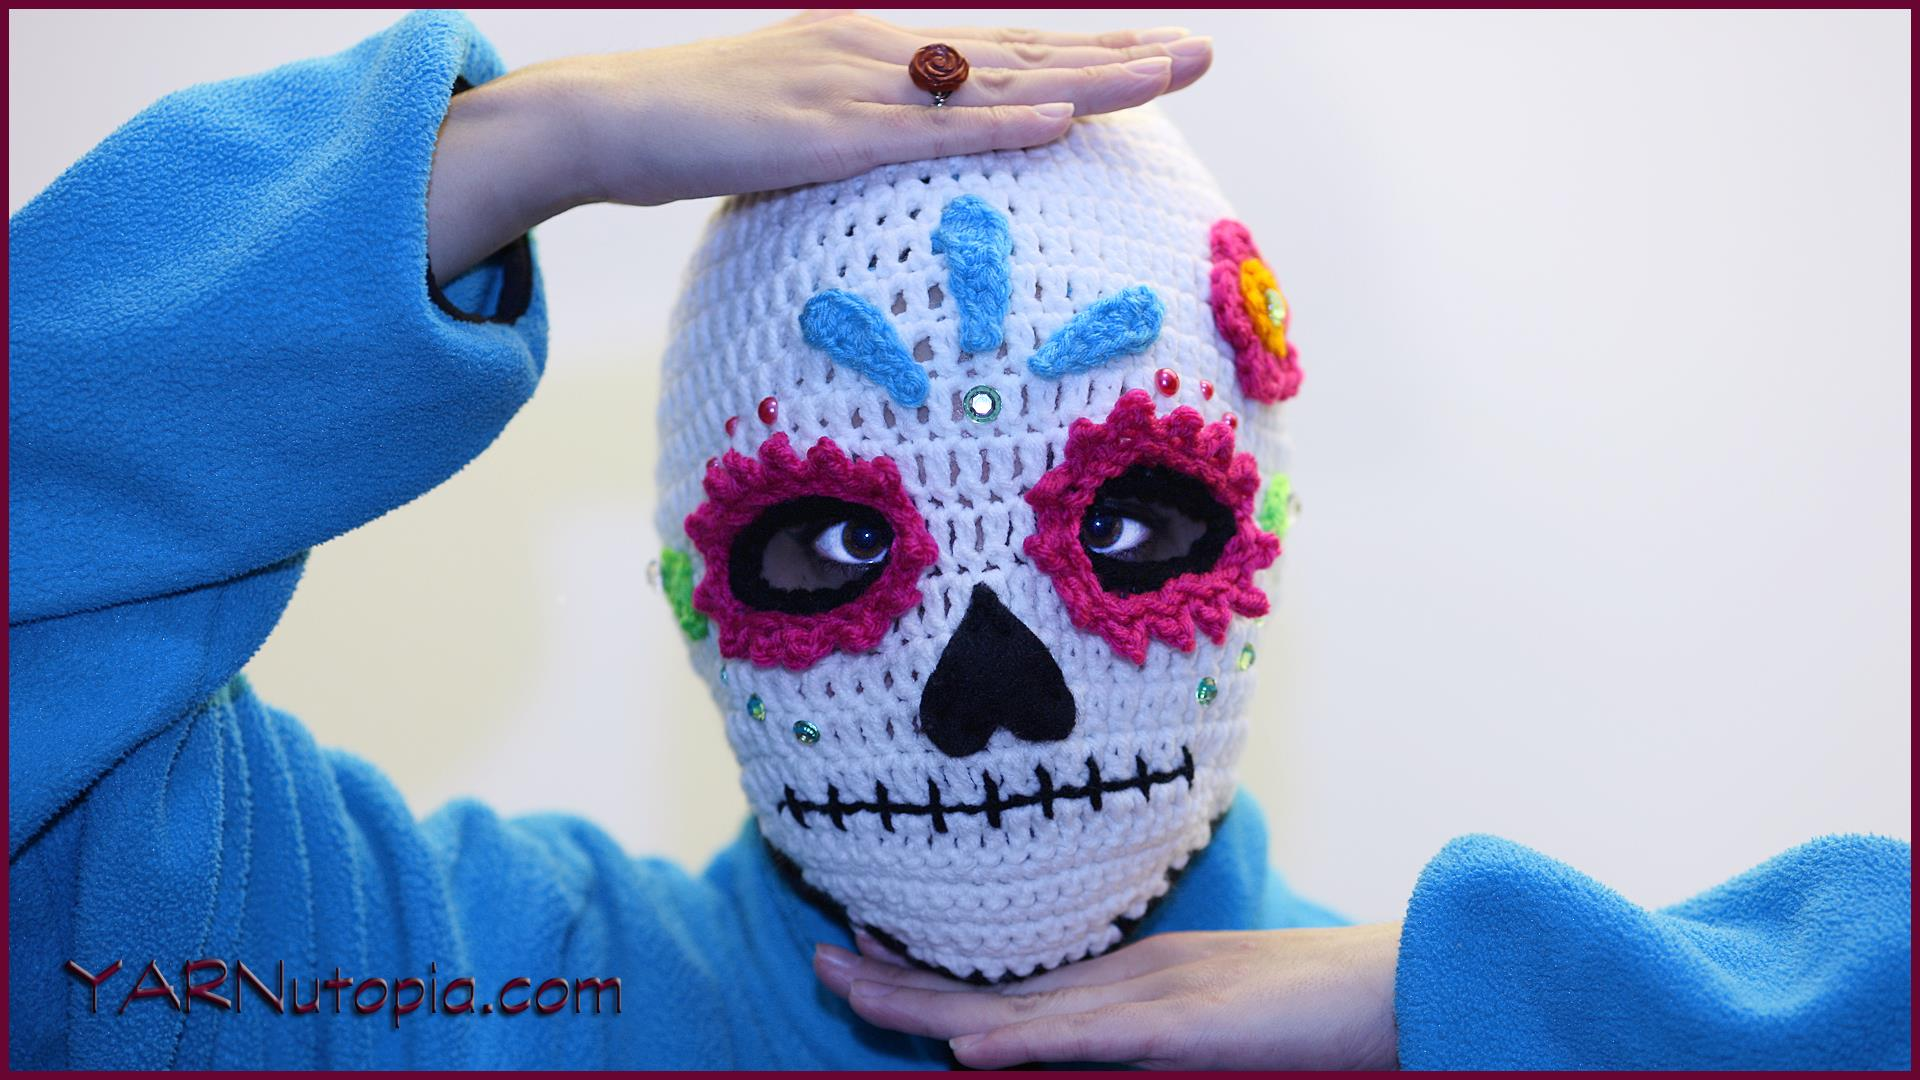 Crochet Tutorial: Sugar Skull Ski Mask « YARNutopia by Nadia Fuad